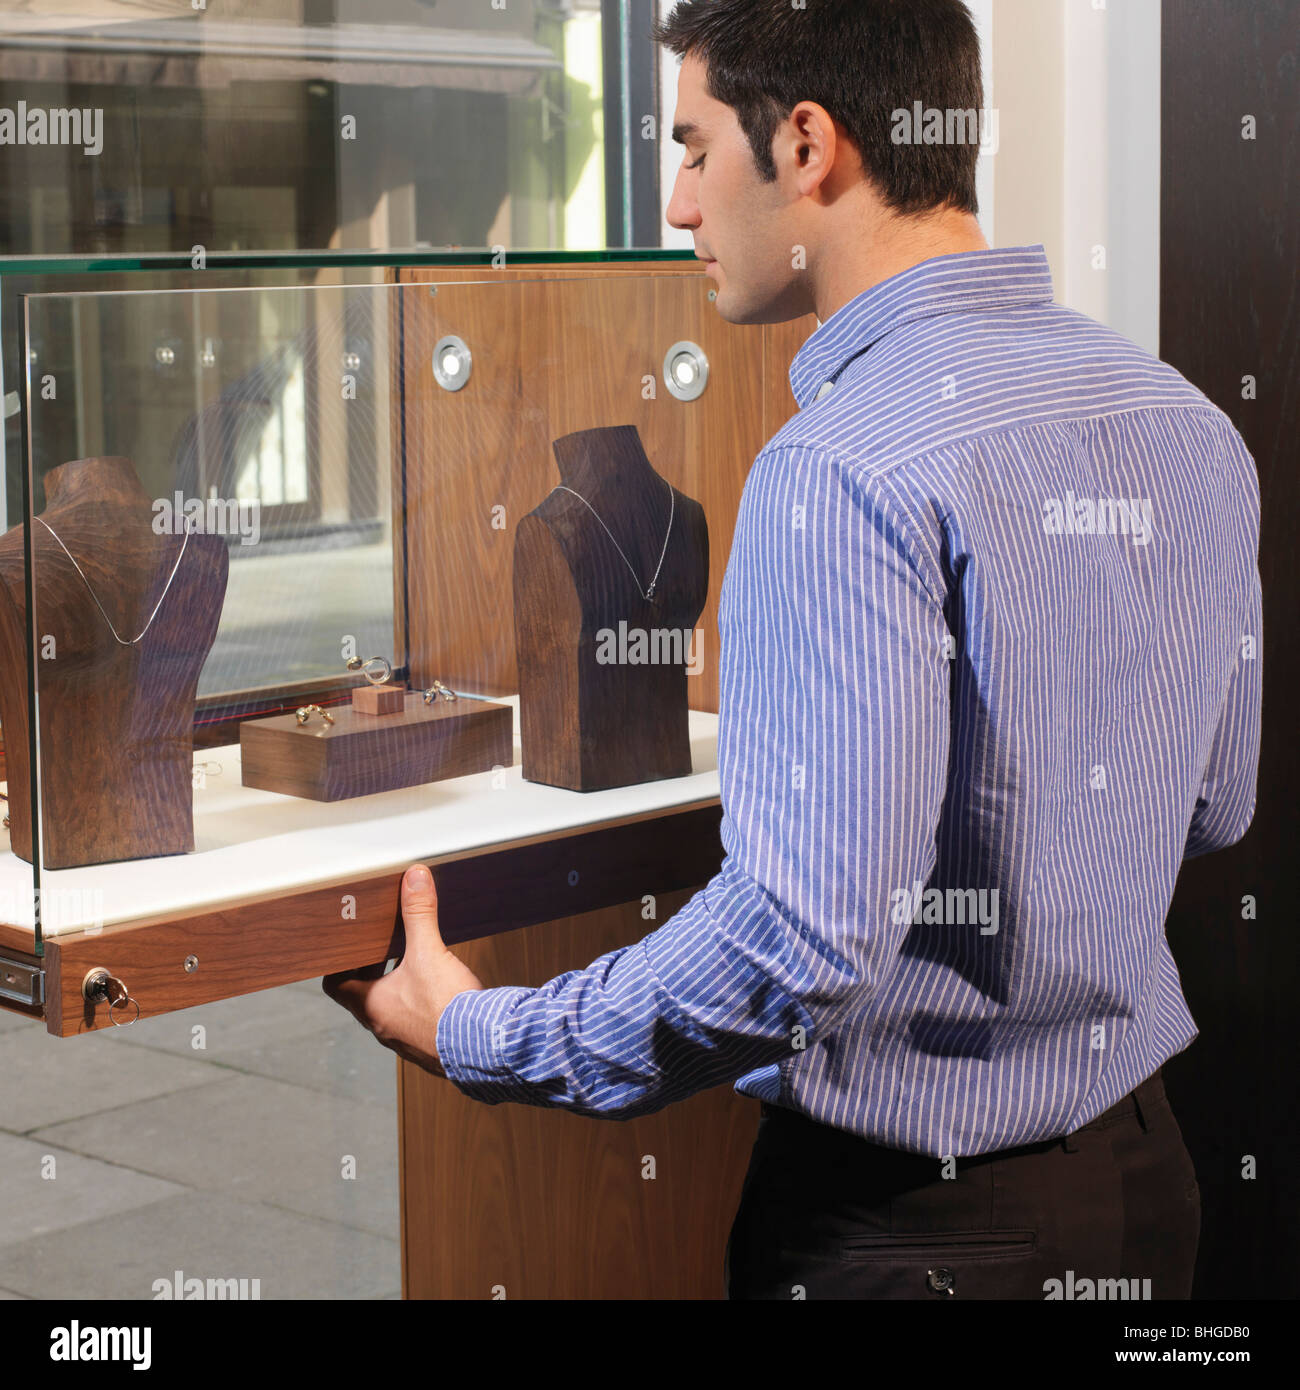 man opening/closing jewelry display - Stock Image